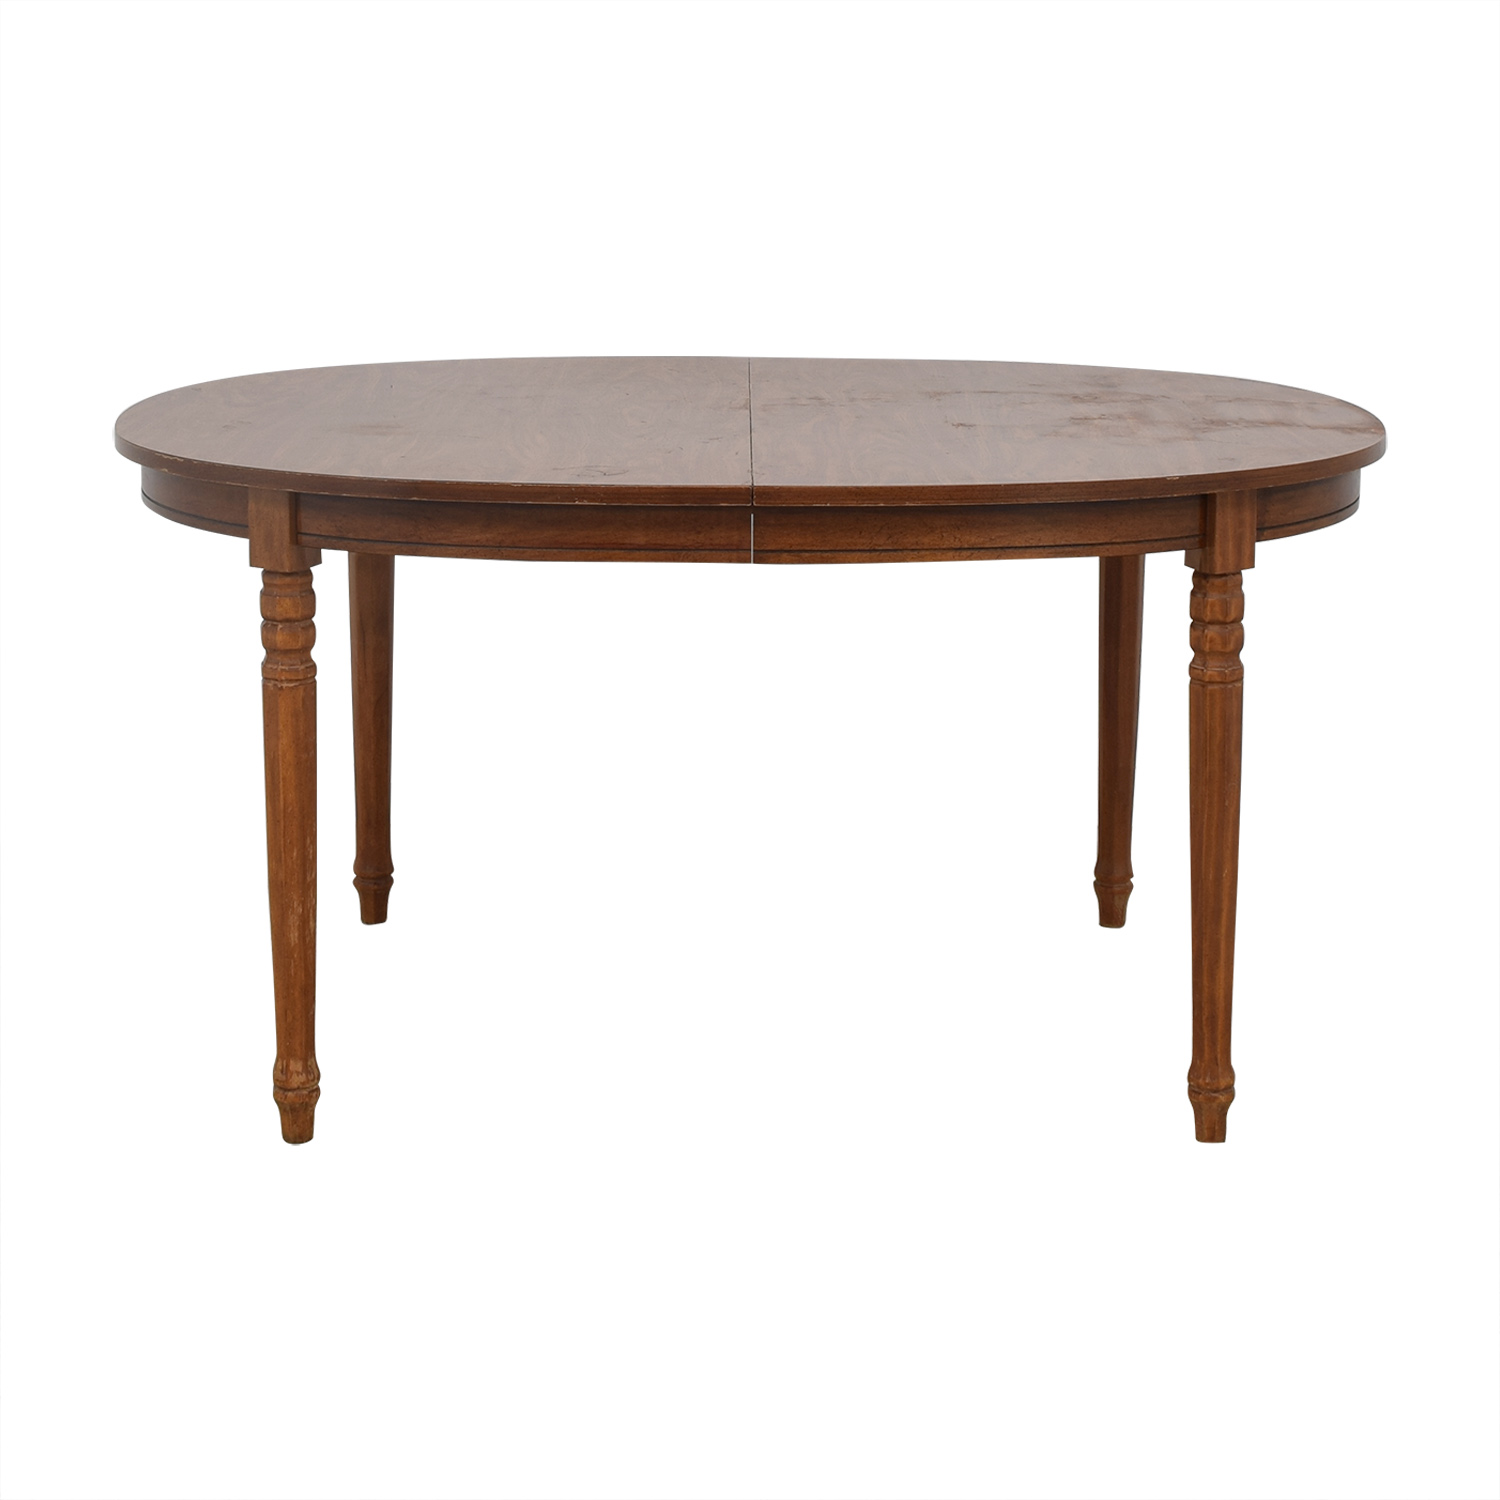 Oval Dining Table / Dinner Tables